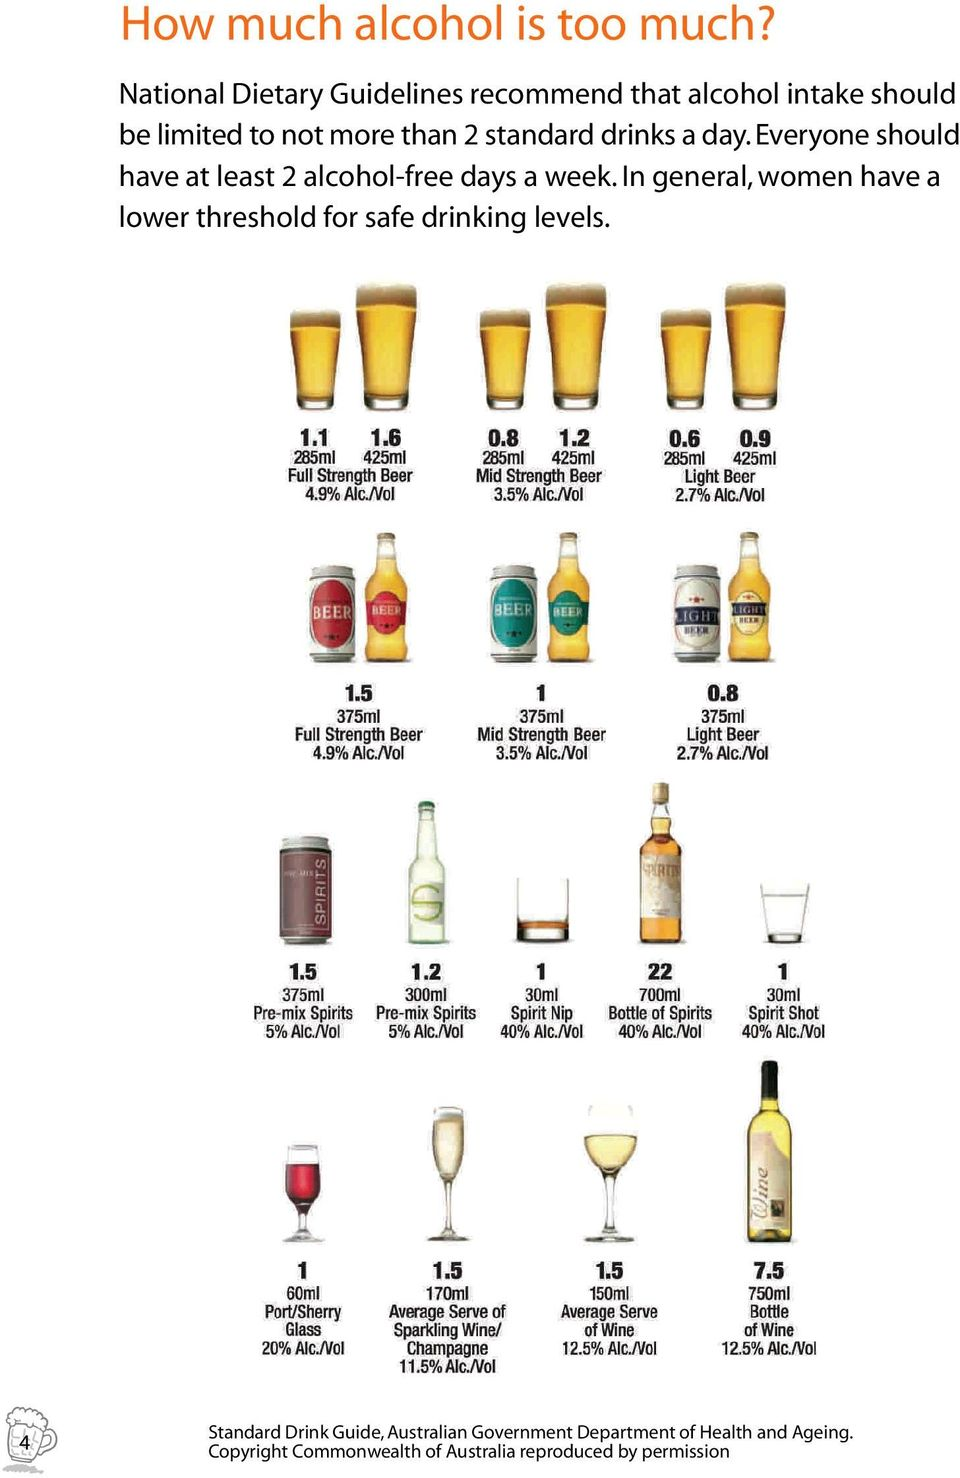 standard drinks a day. Everyone should have at least 2 alcohol-free days a week.